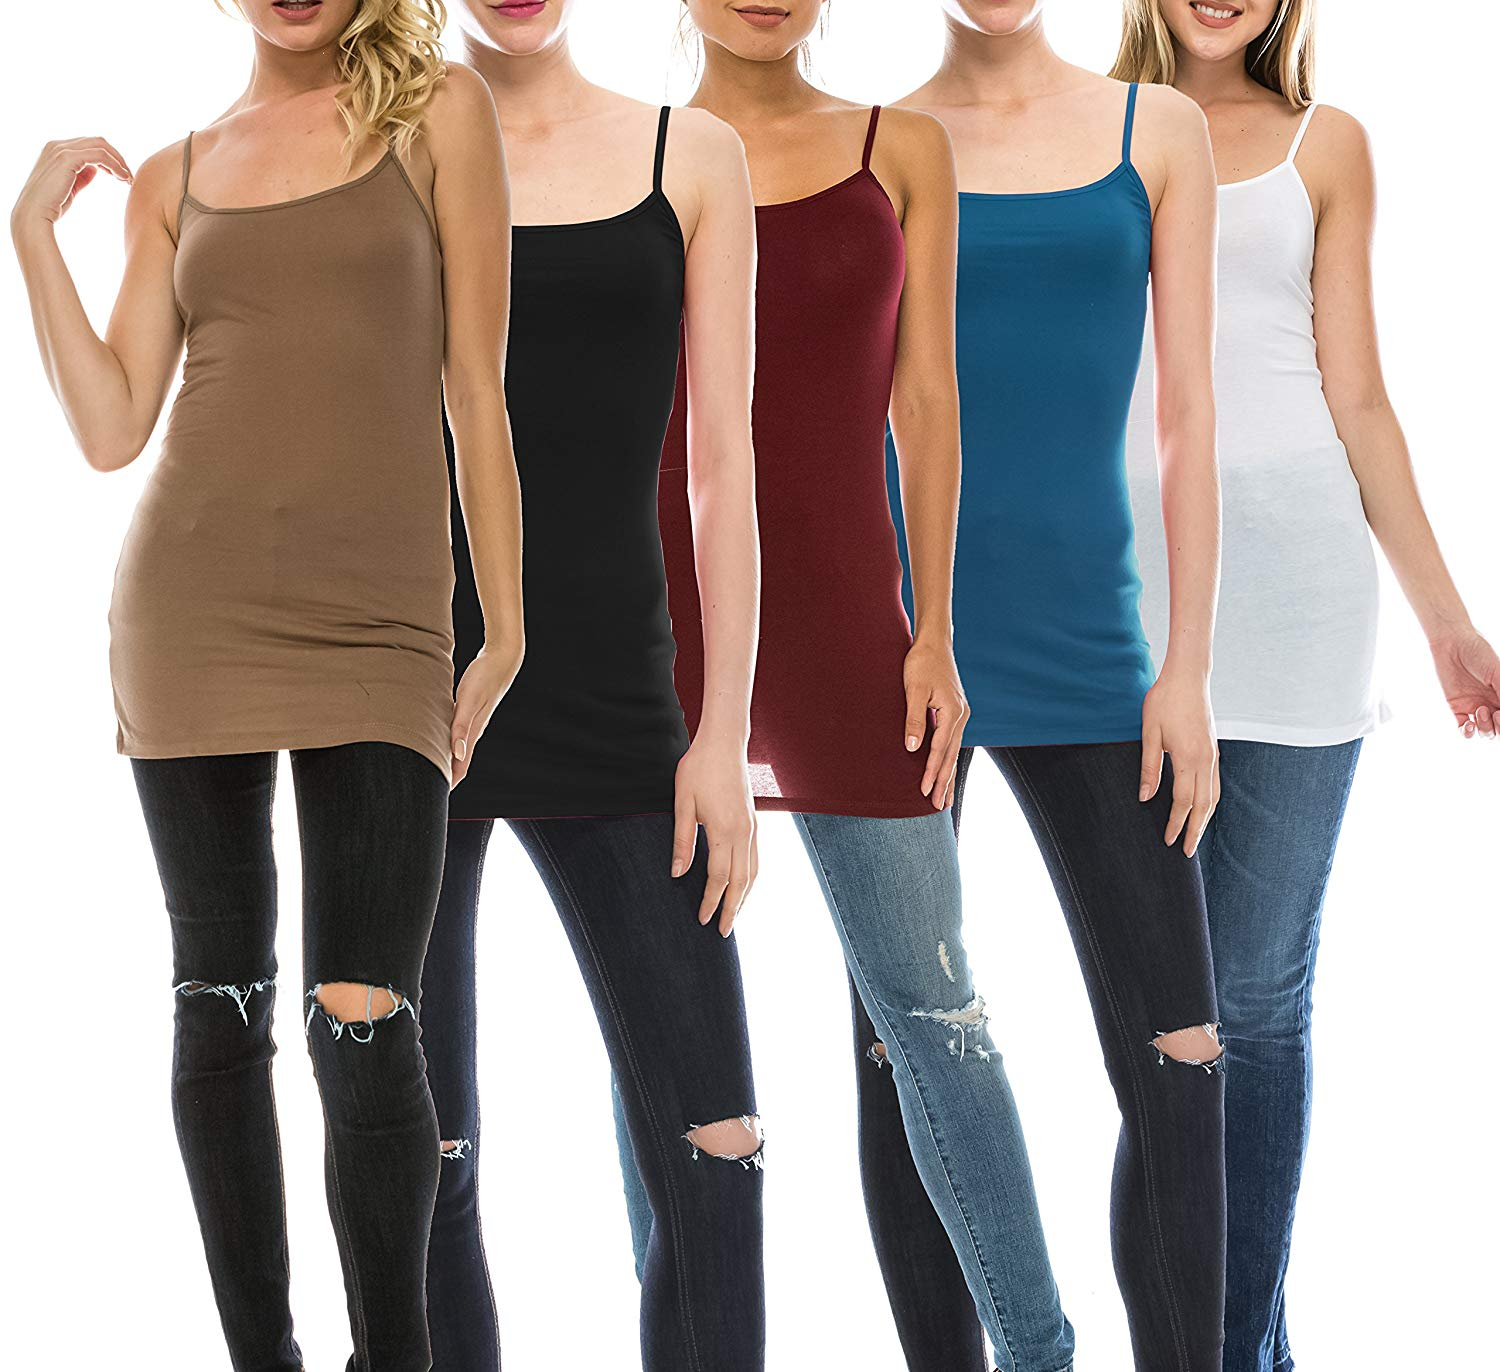 f9dbe69184f6b Get Quotations · Nolabel Multi Pack Womens Basic Long Length Adjustable  Spaghetti Strap Cami Tank Top Camisole Plus (